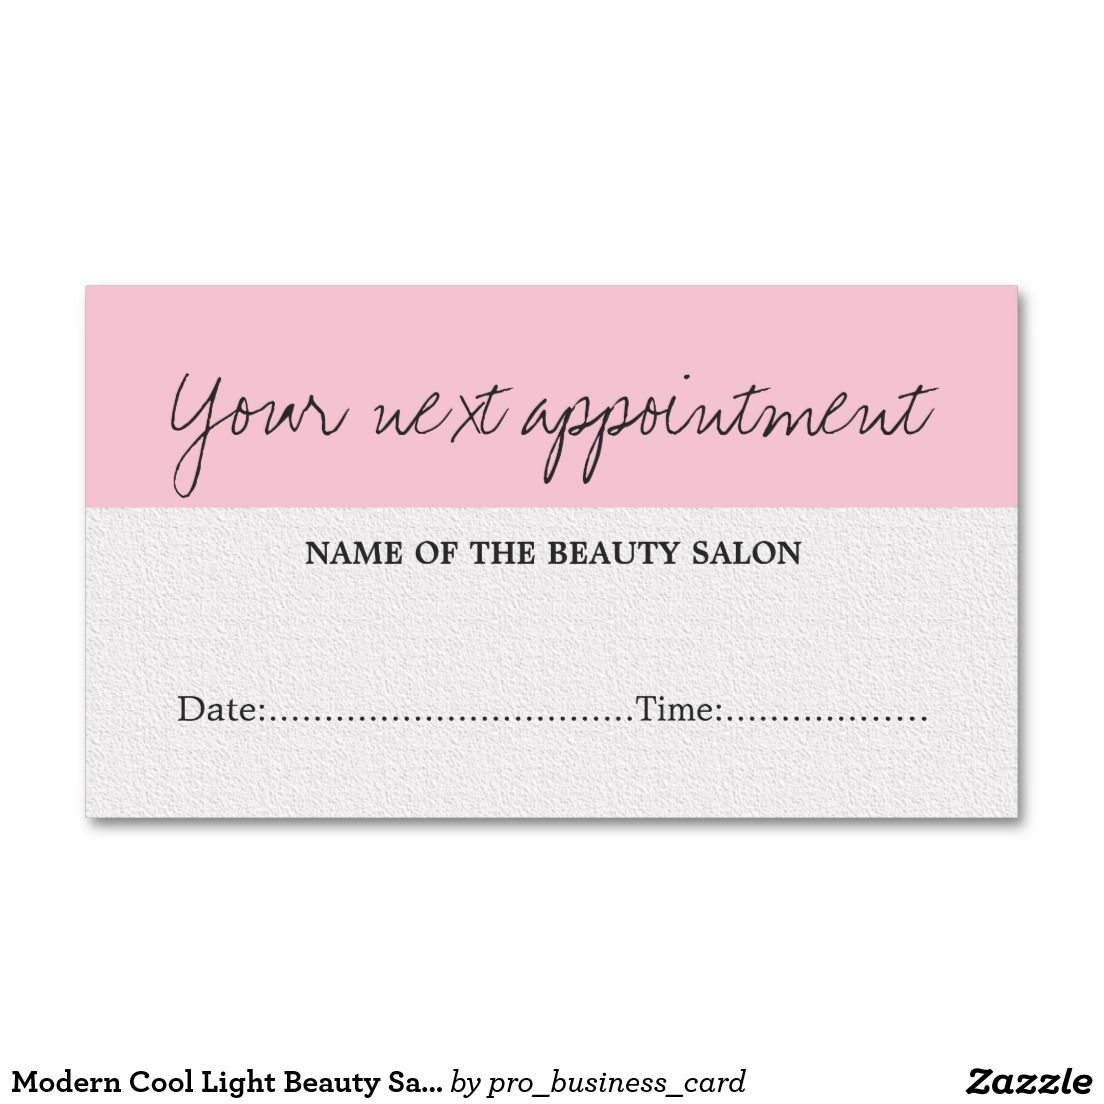 Modern Cool Light Beauty Salon Appointment Card | Business cards